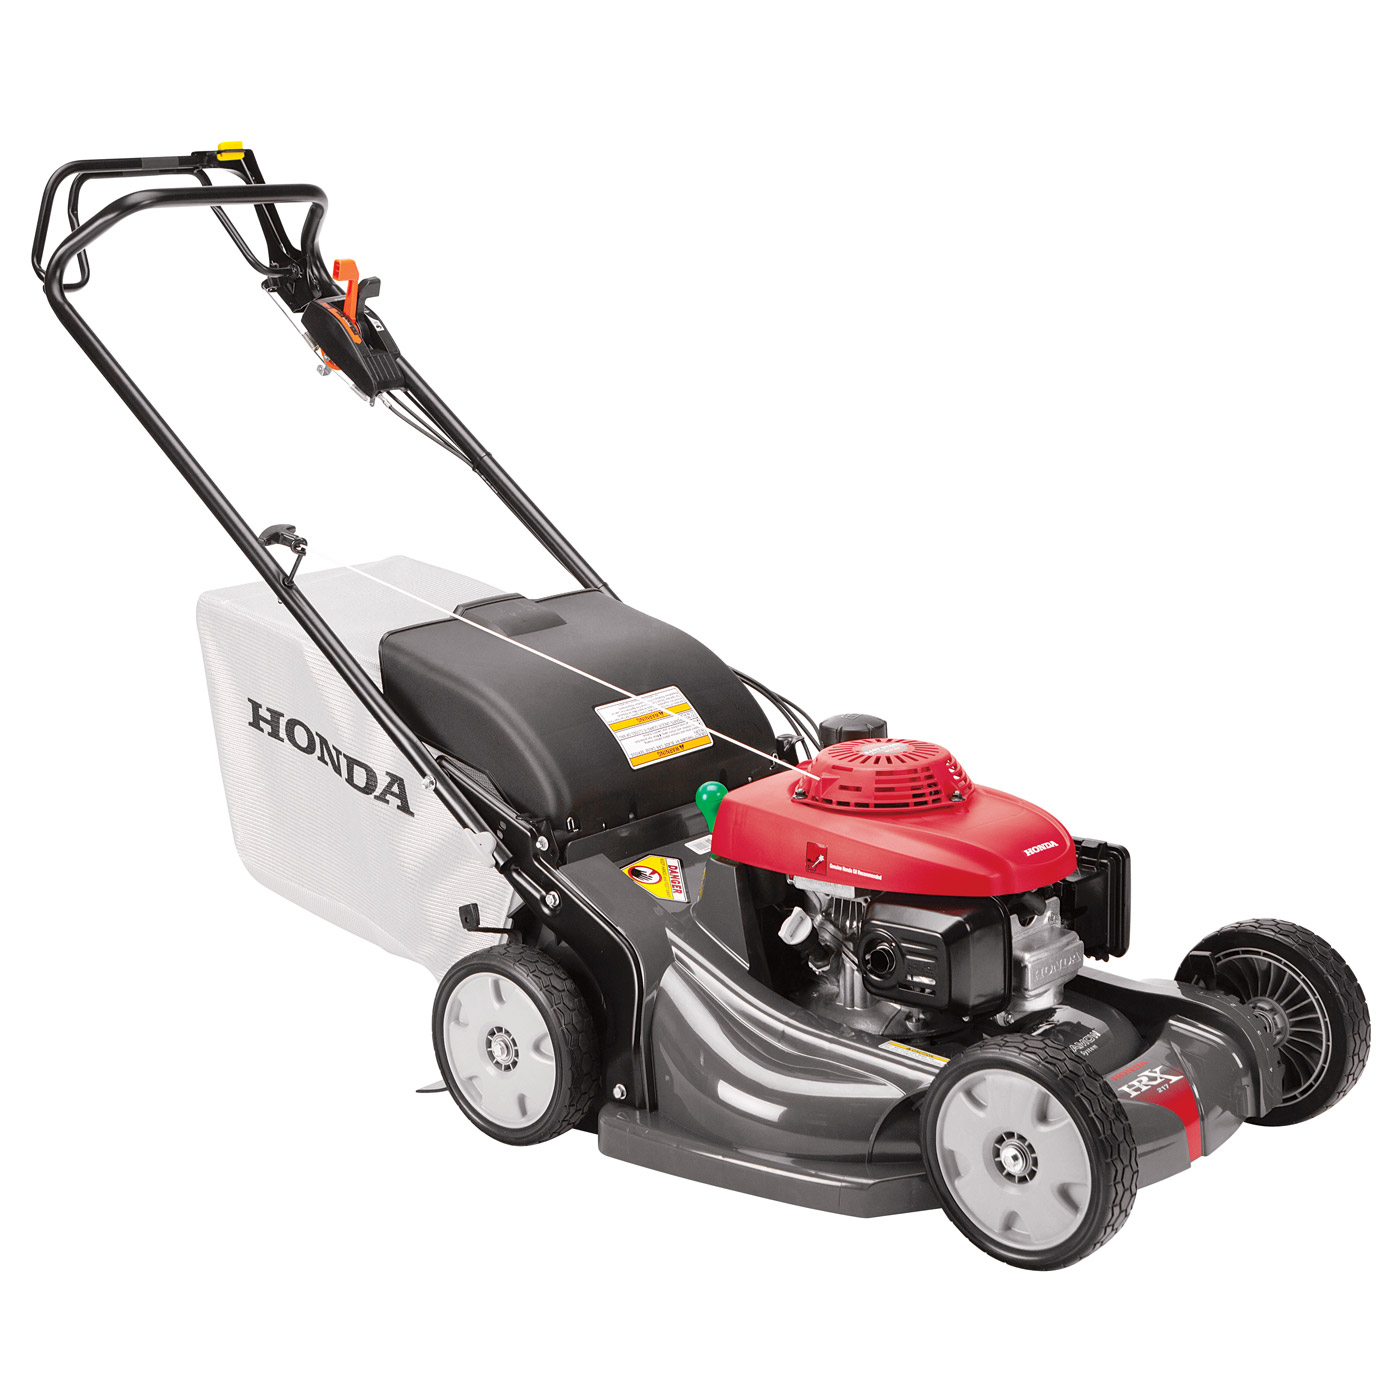 Lawn Mower image #14735